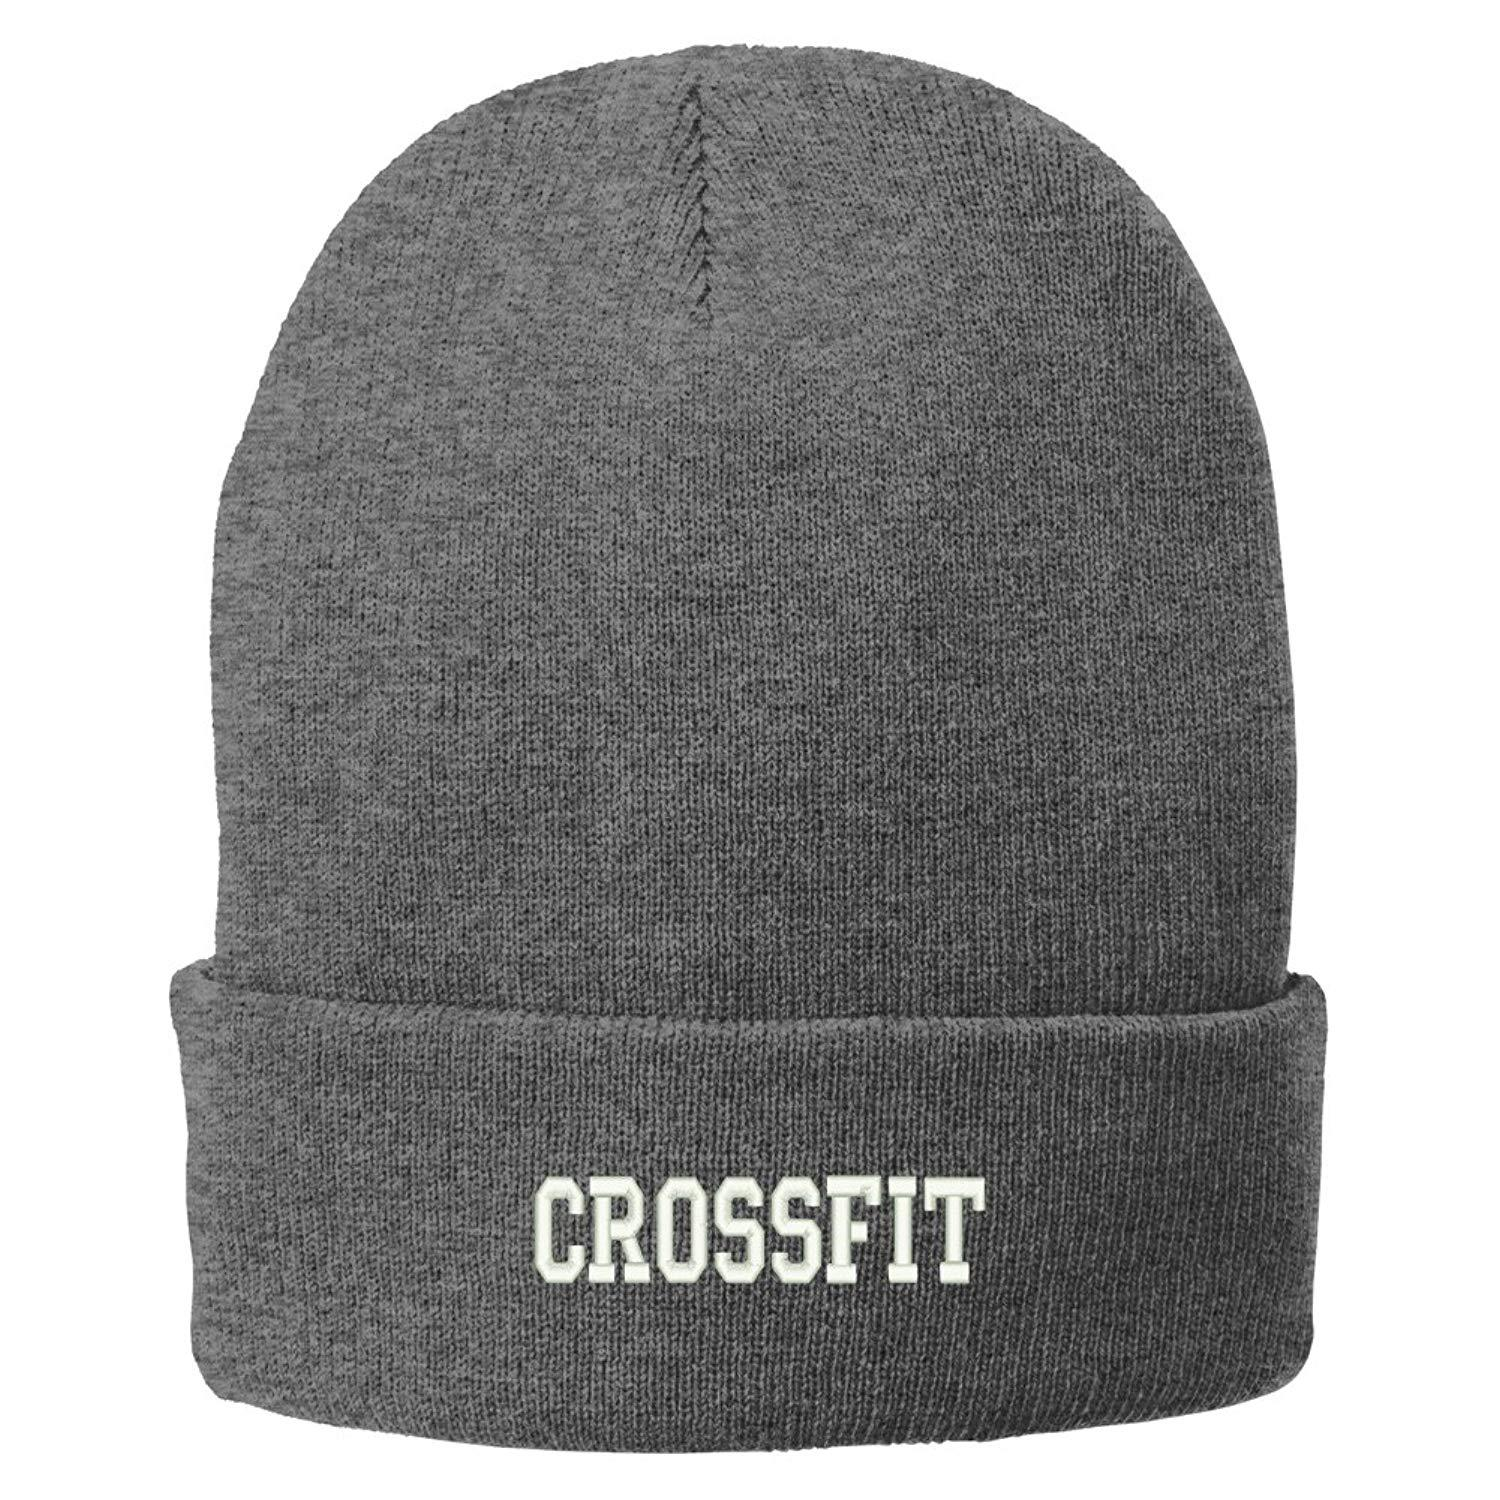 3cee29b7f75 Trendy Apparel Shop Crossfit College Font Embroidered Winter Knitted Long  Beanie - Walmart.com